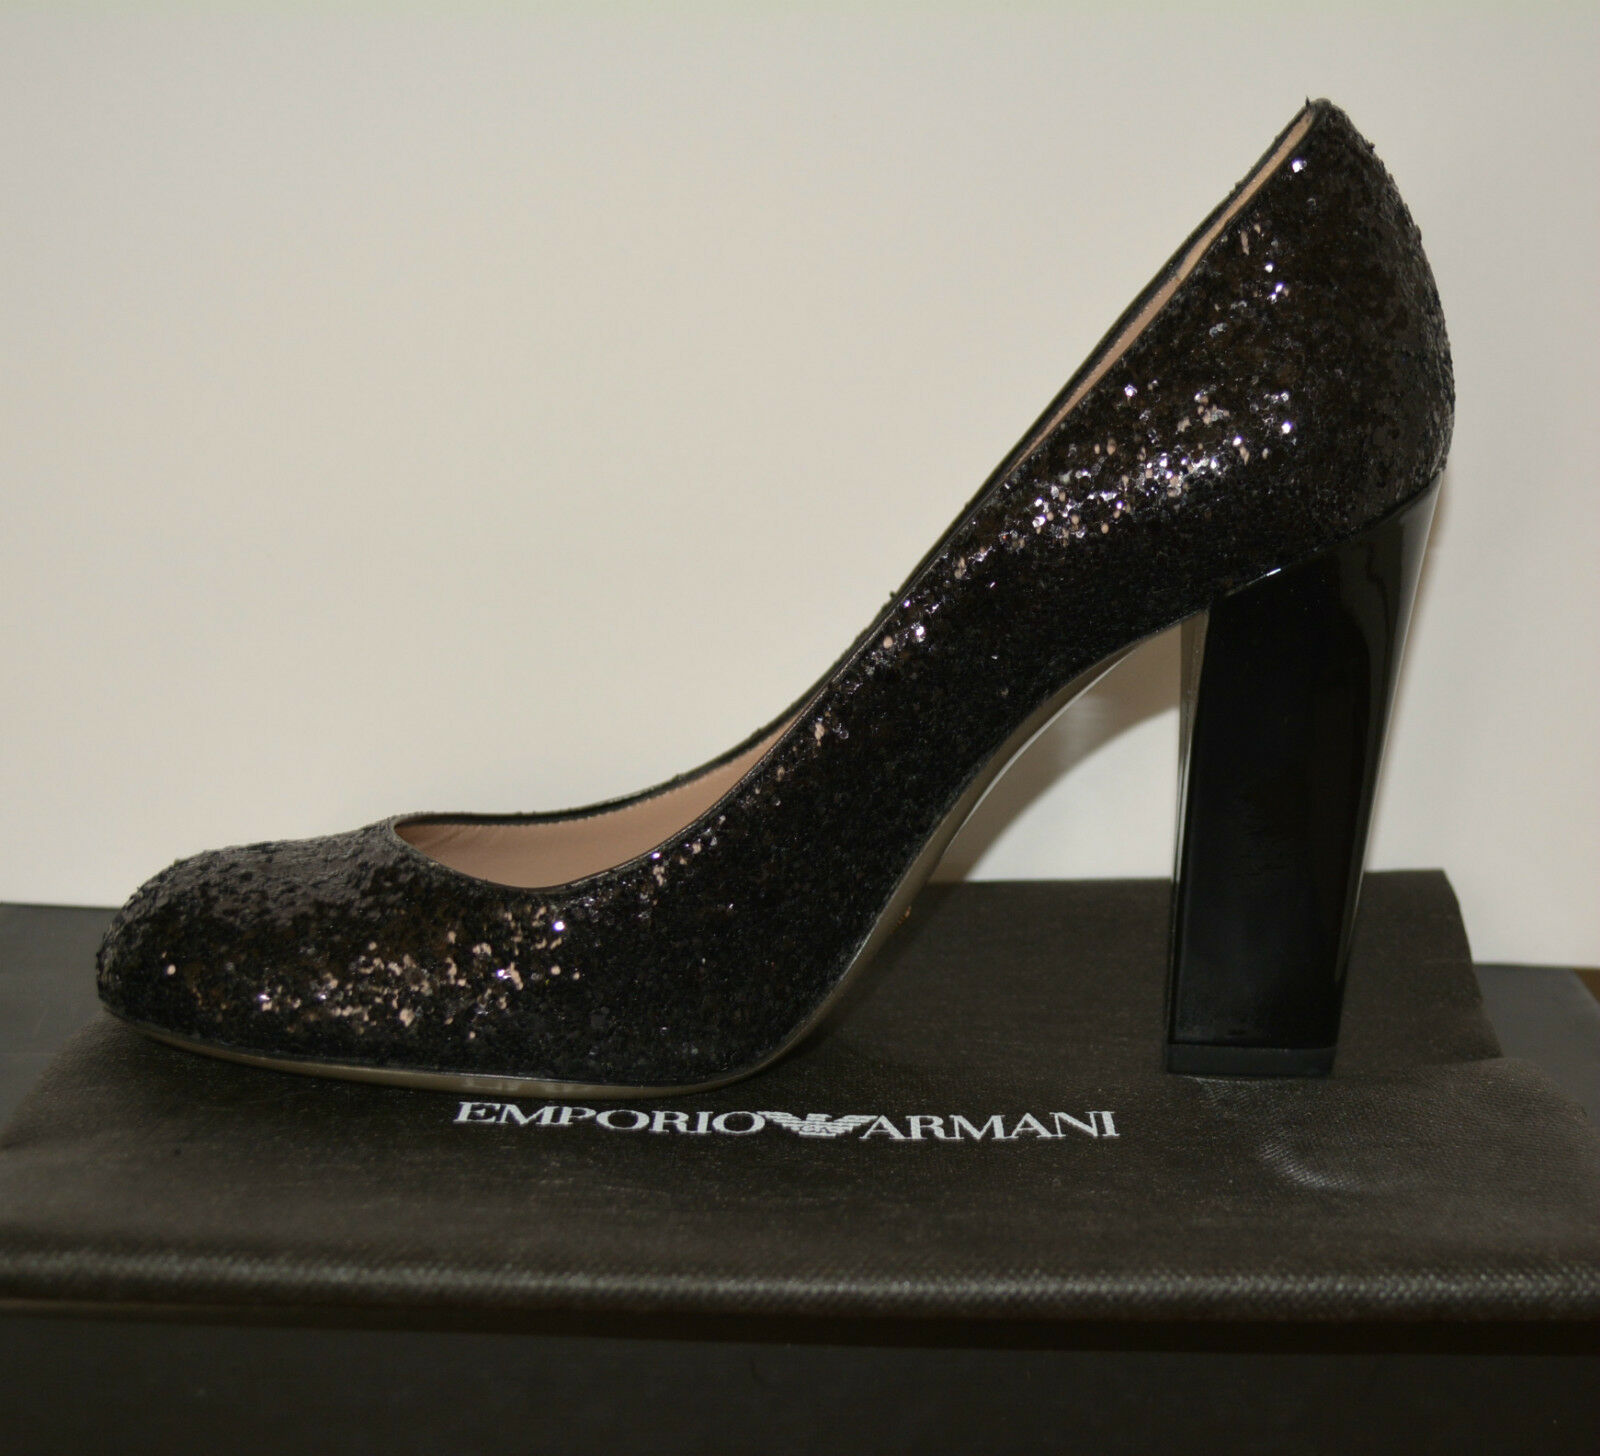 NIB EMPORIO ARMANI  GLITTER PUMPS SHOES SZ US 10 MADE IN ITALY